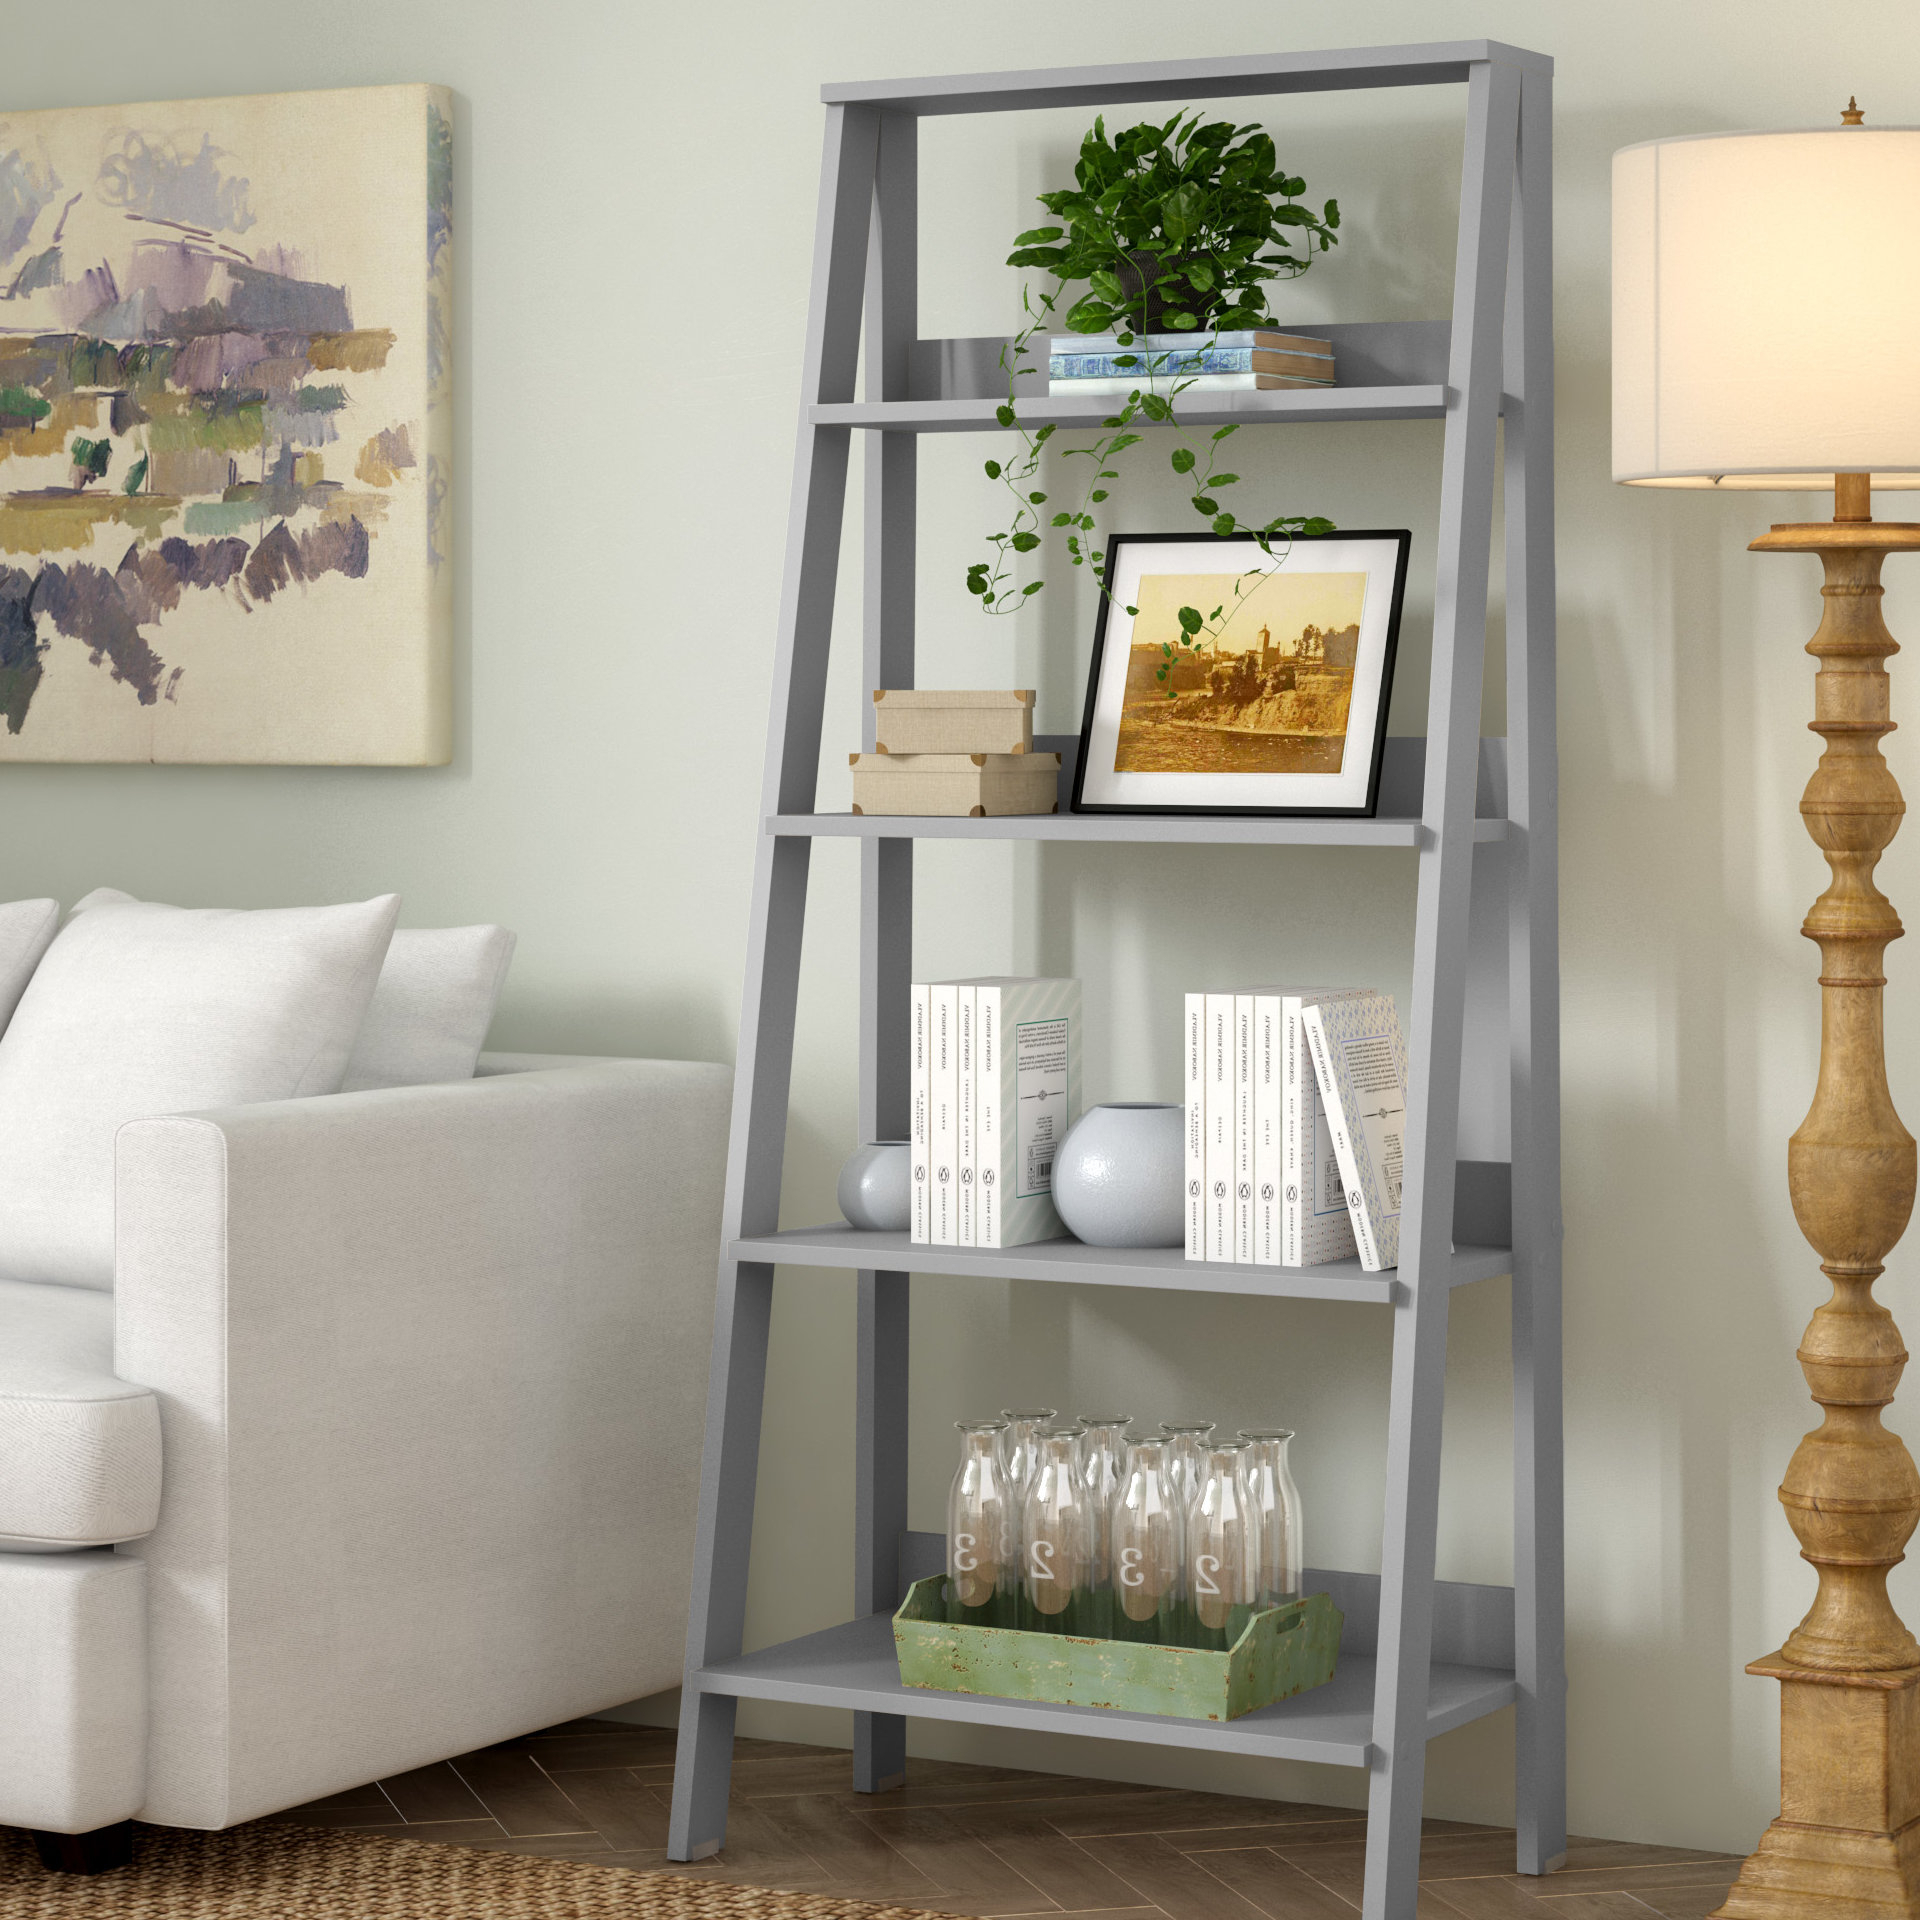 Farmhouse & Rustic Leaning Bookcases & Bookshelves (View 4 of 20)